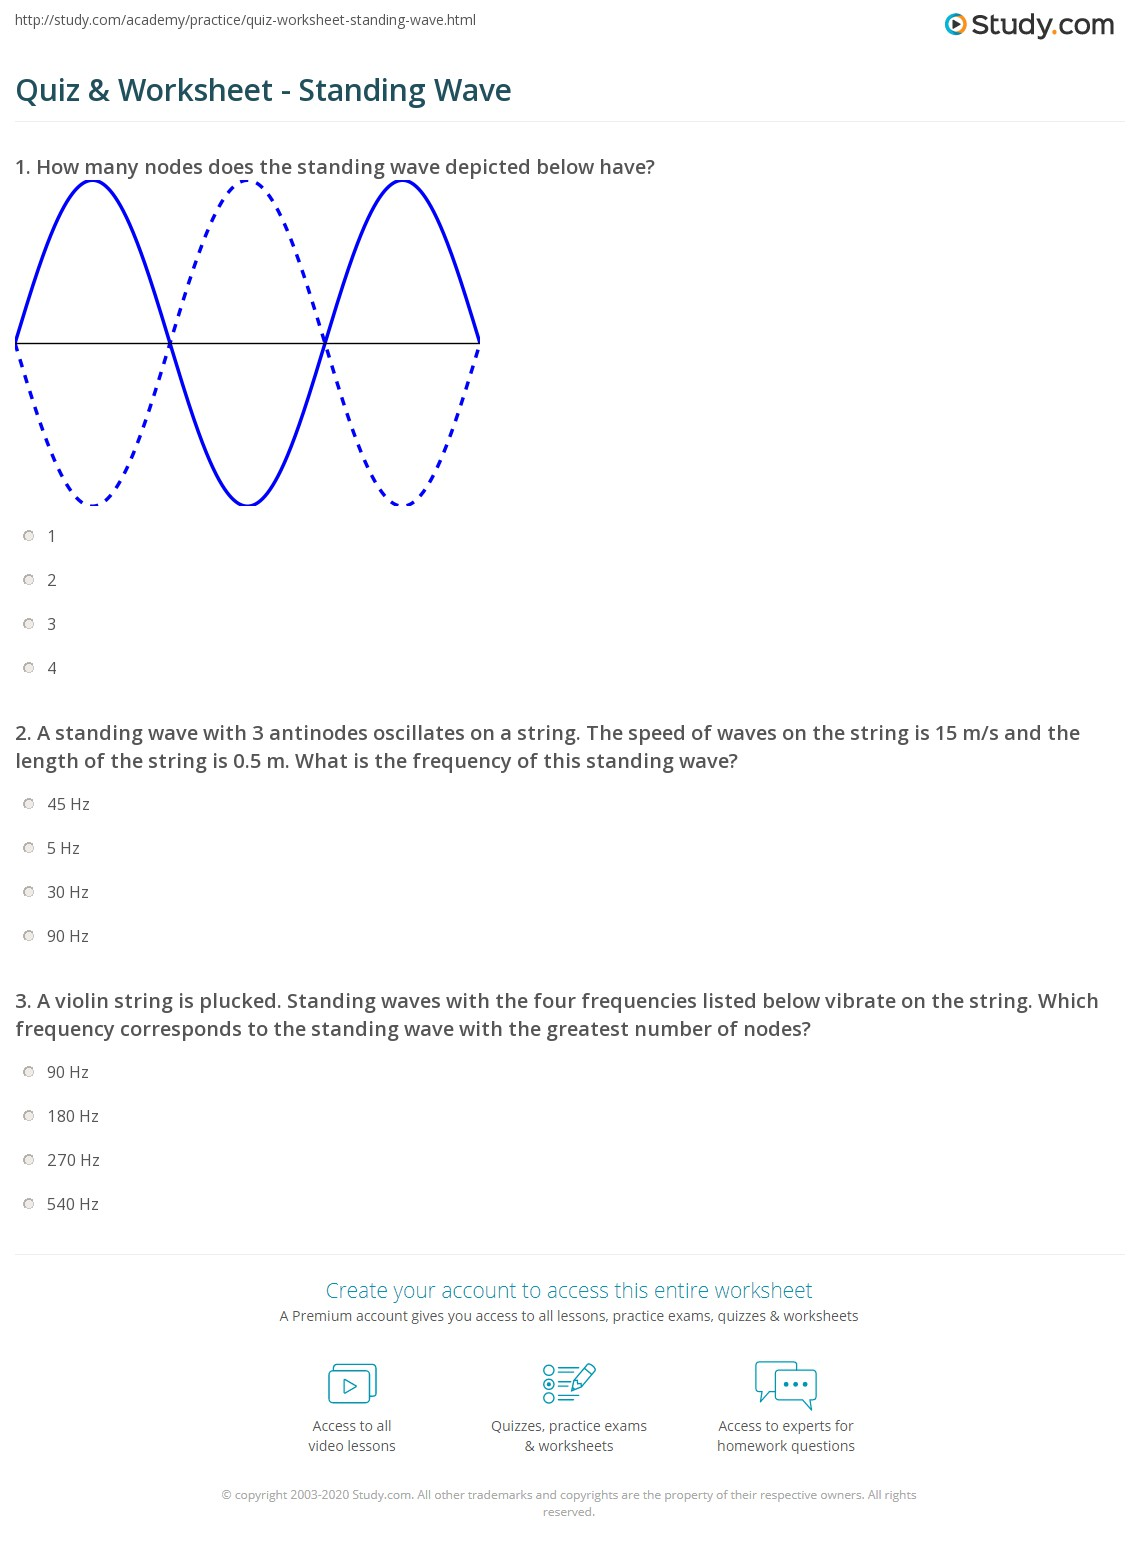 Quiz & Worksheet - Standing Wave | Study.com